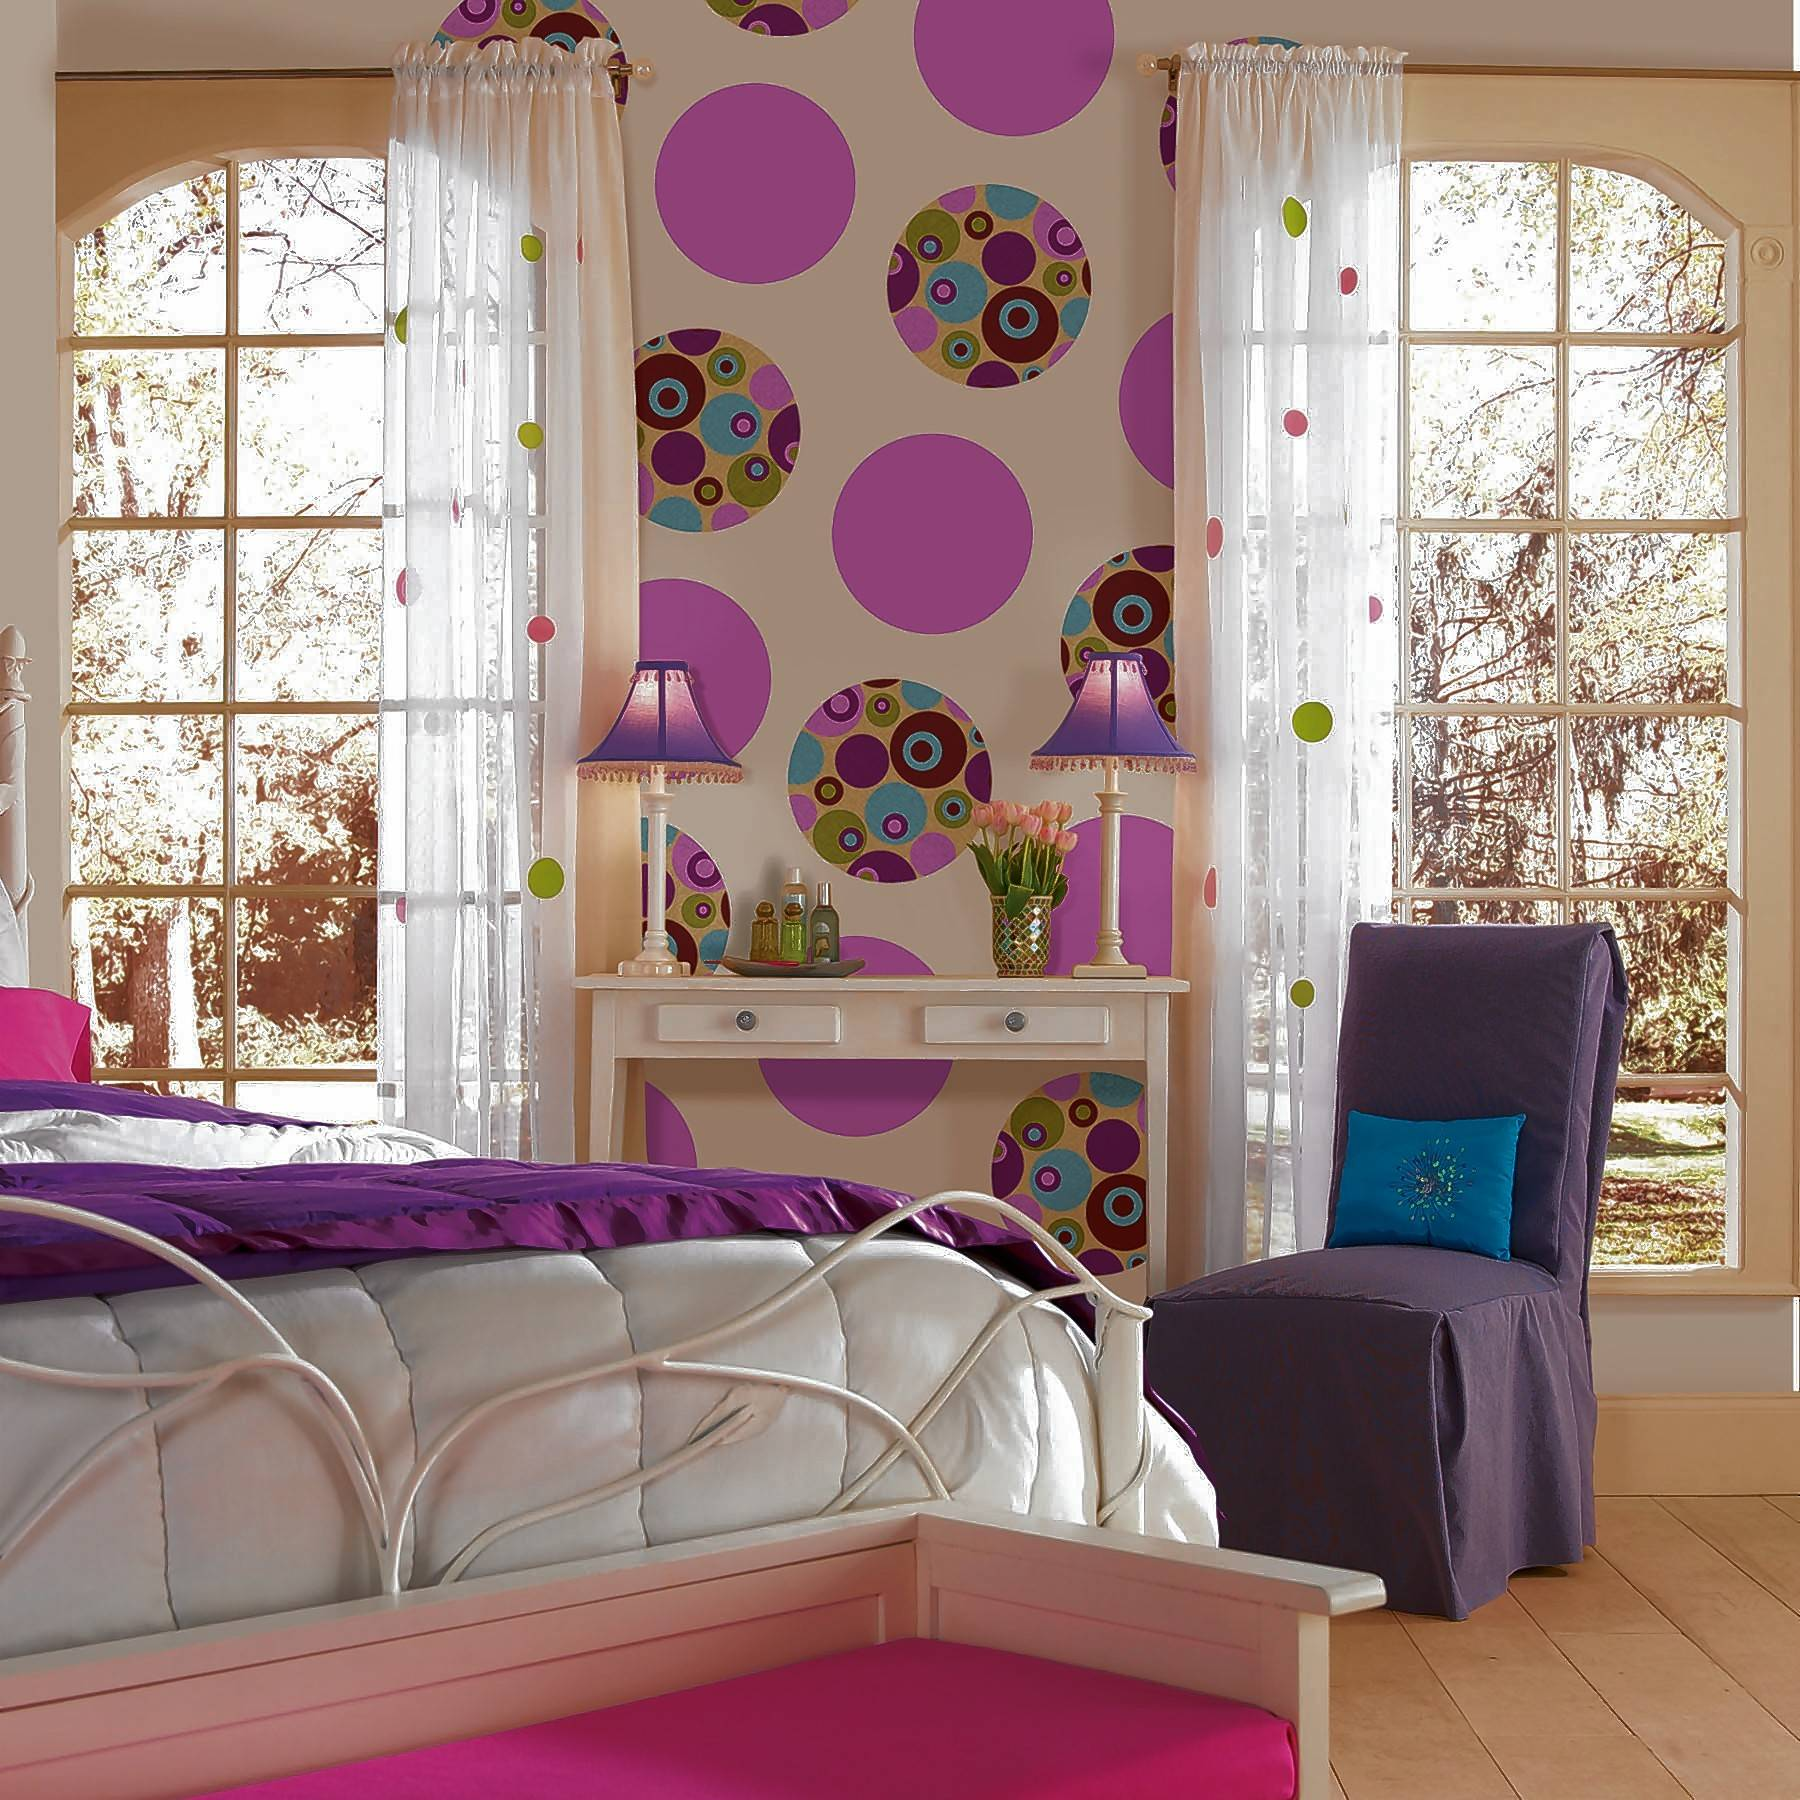 Peel-and-stick decals can be used to complement colors of the bedding, window treatments and decorative items.